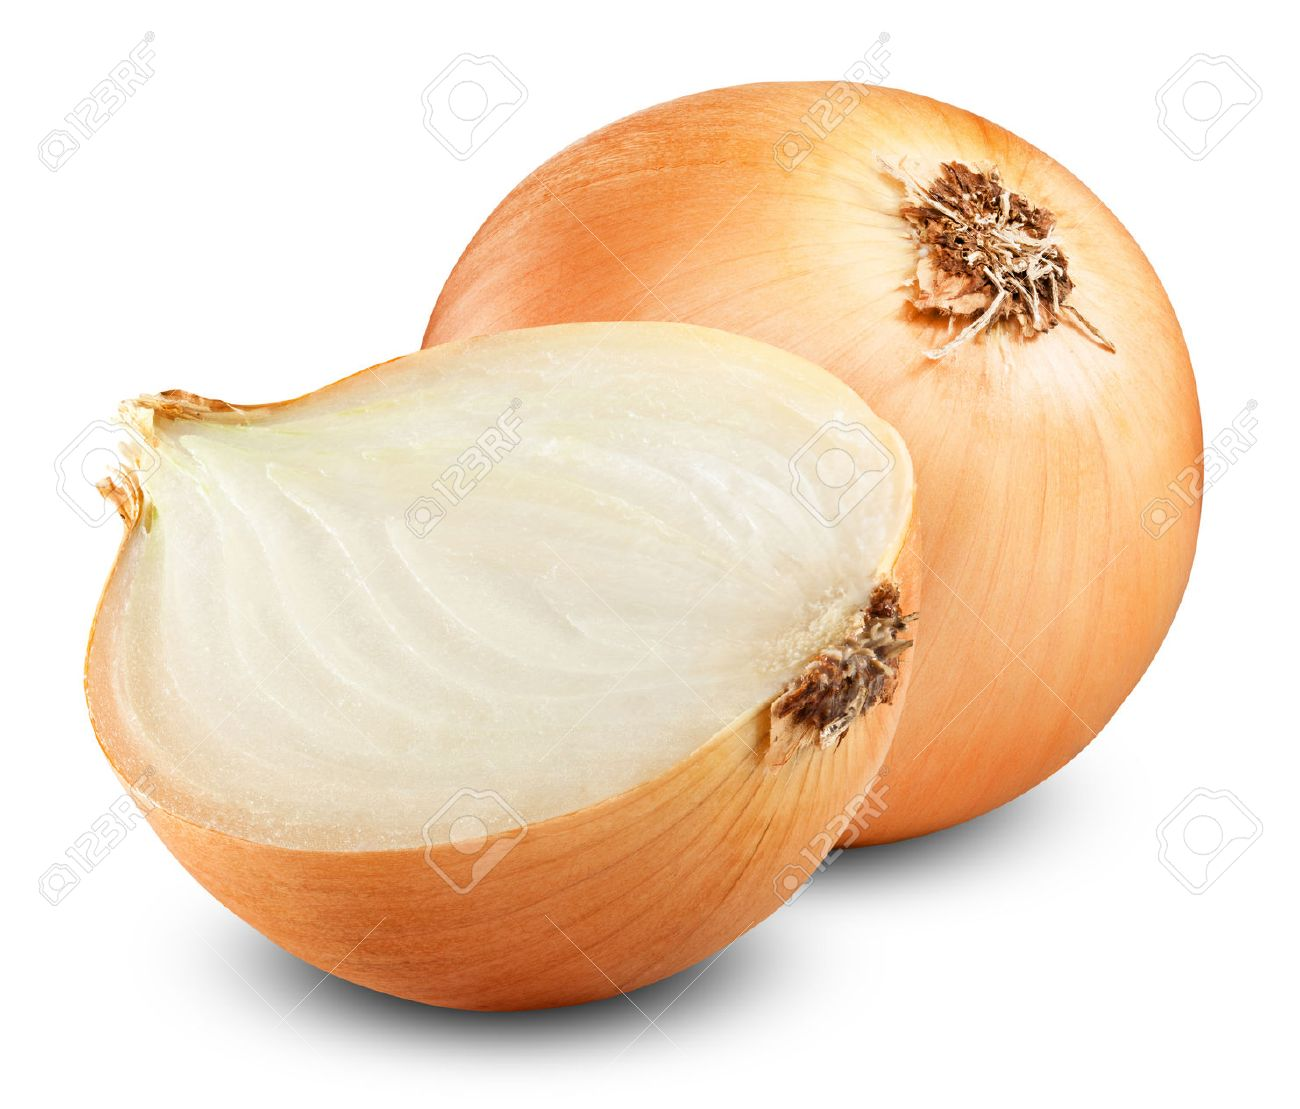 Fresh onion bulbs isolated on white background - 31590967